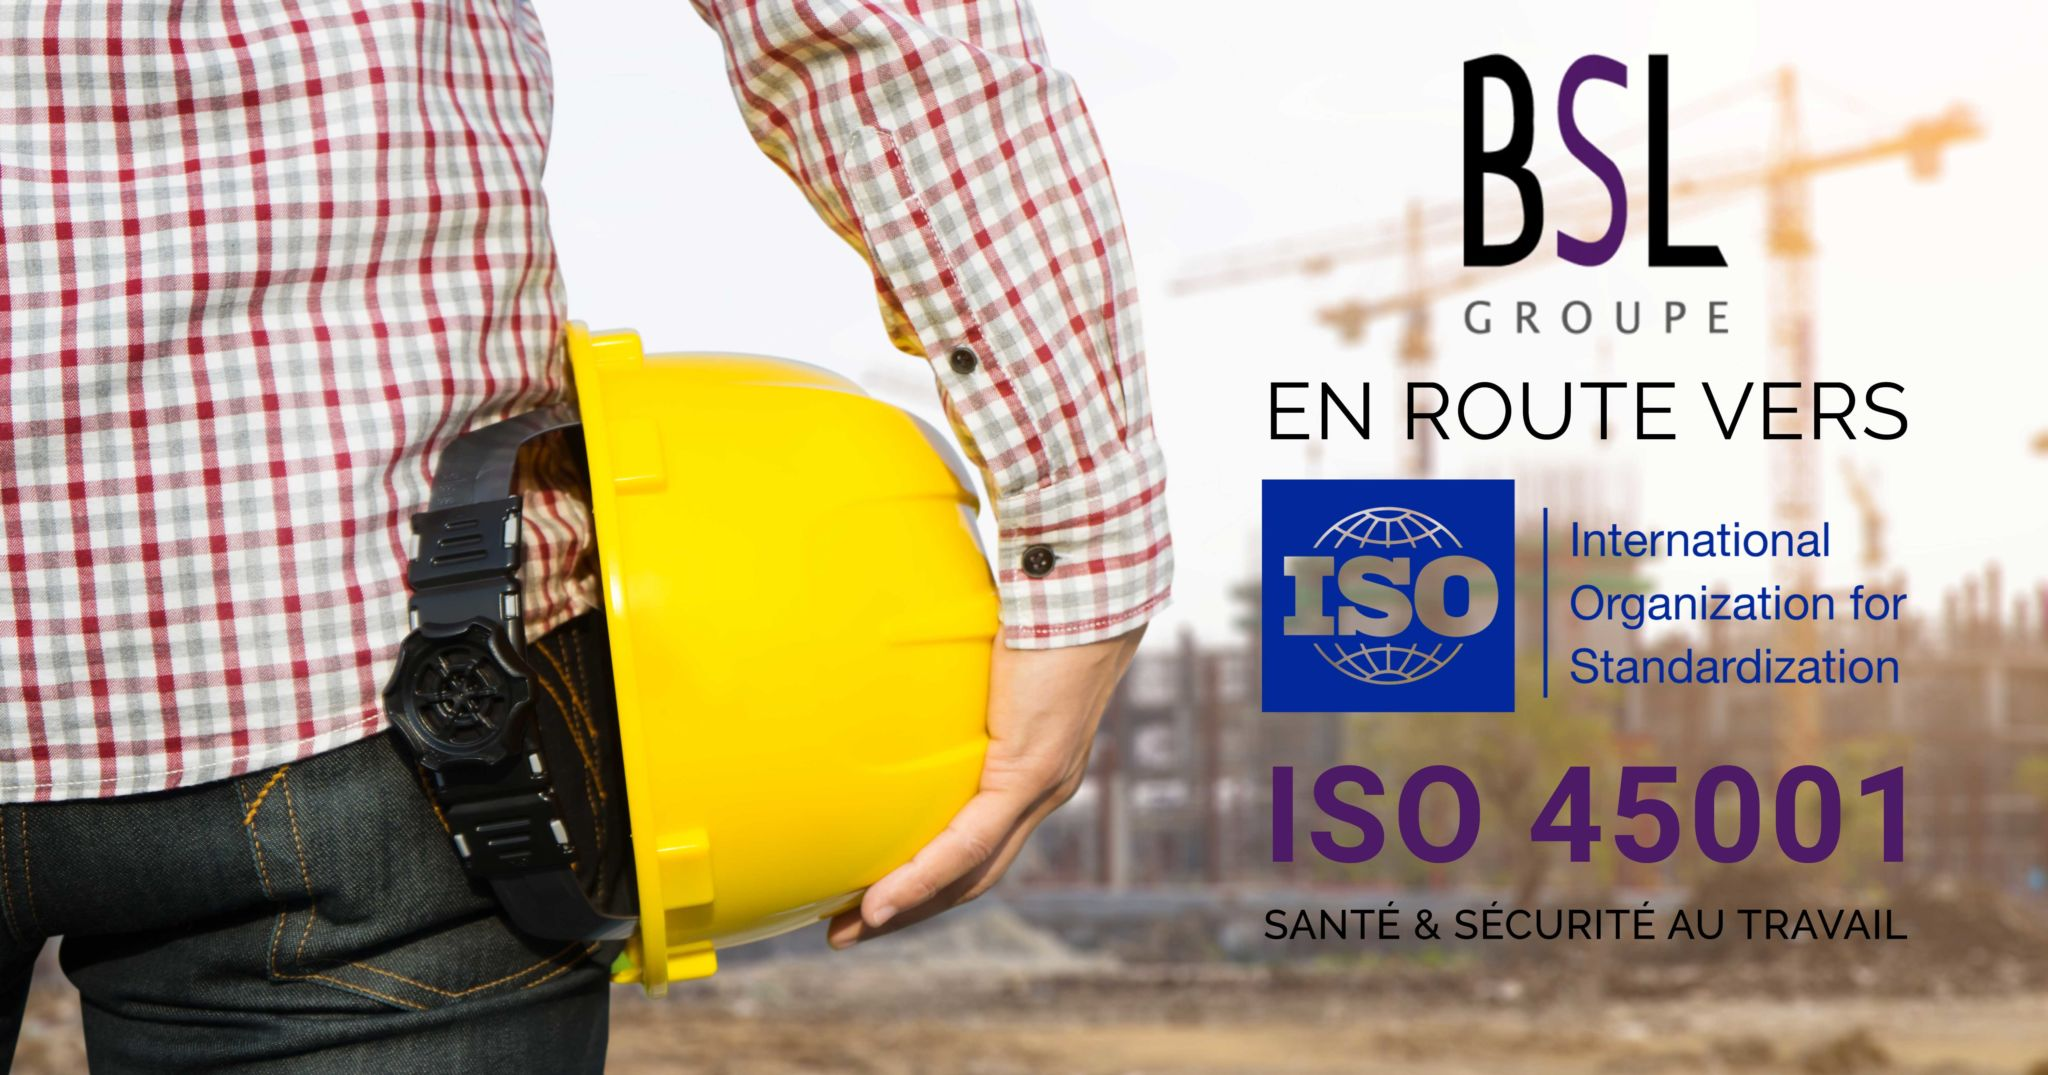 iso-45001-sante-securite-groupe-bsl